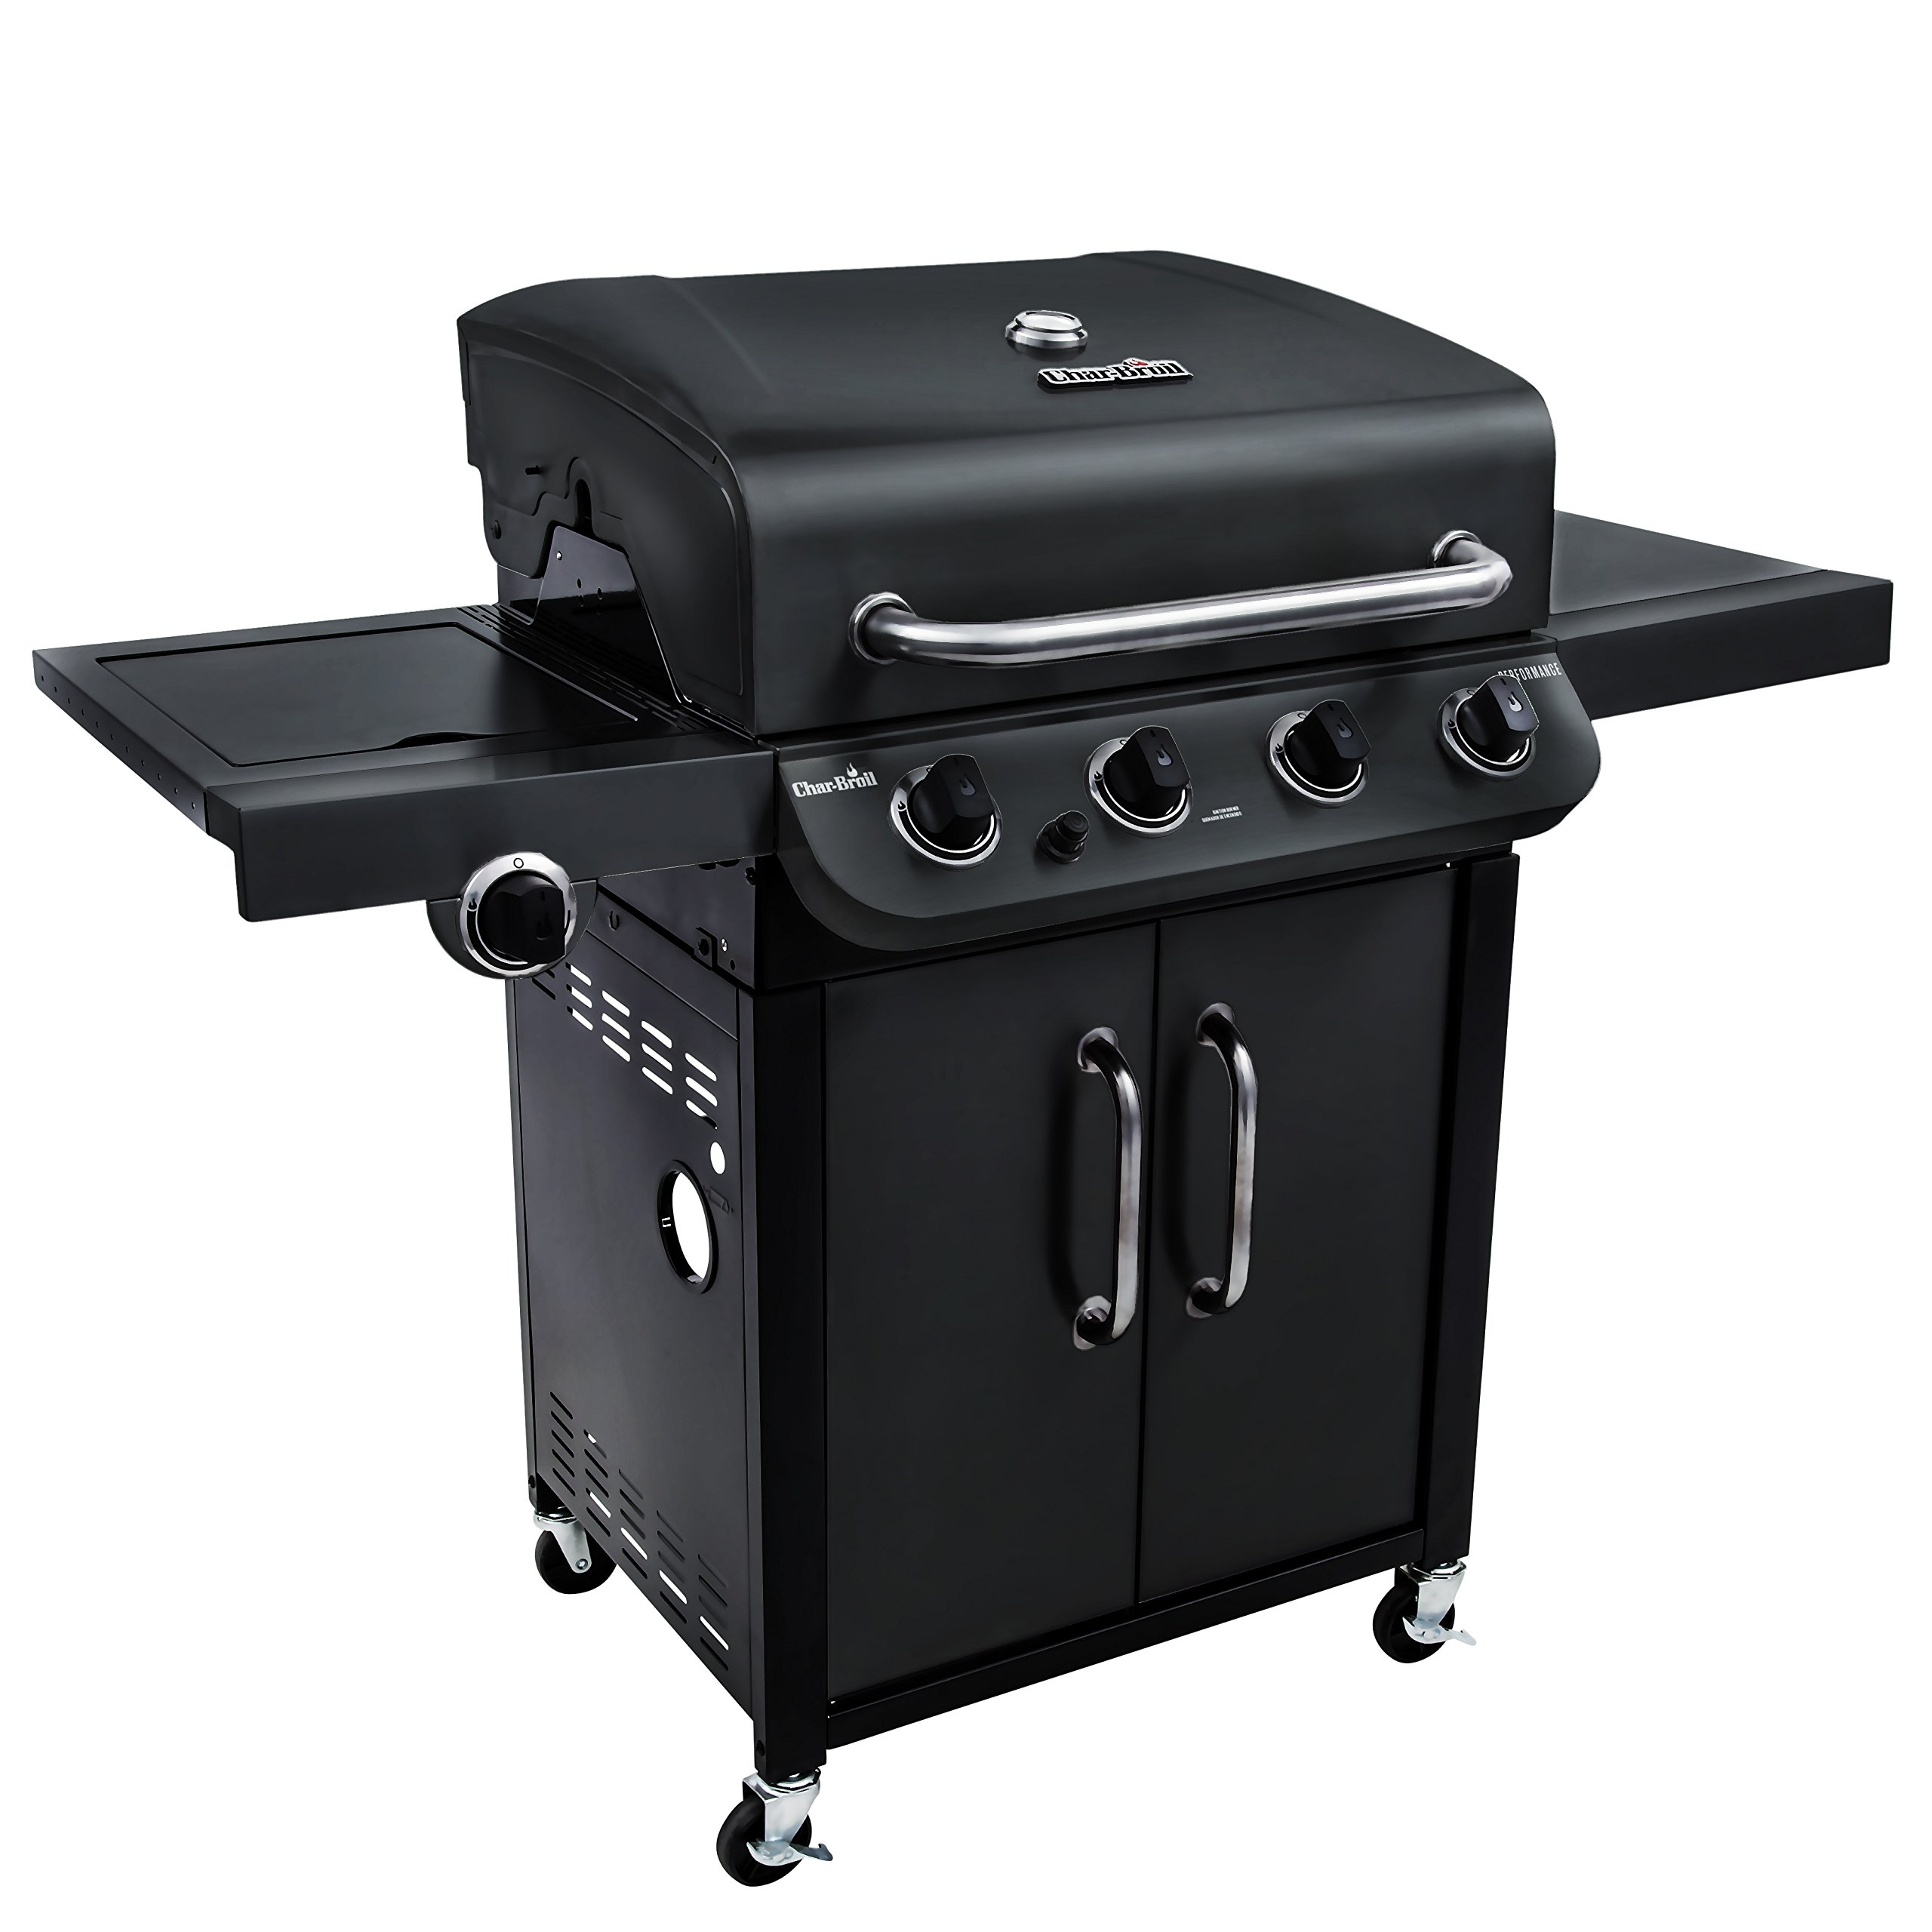 Char-Broil Performance 475 4-Burner Cabinet Liquid Propane Gas Grill- Black